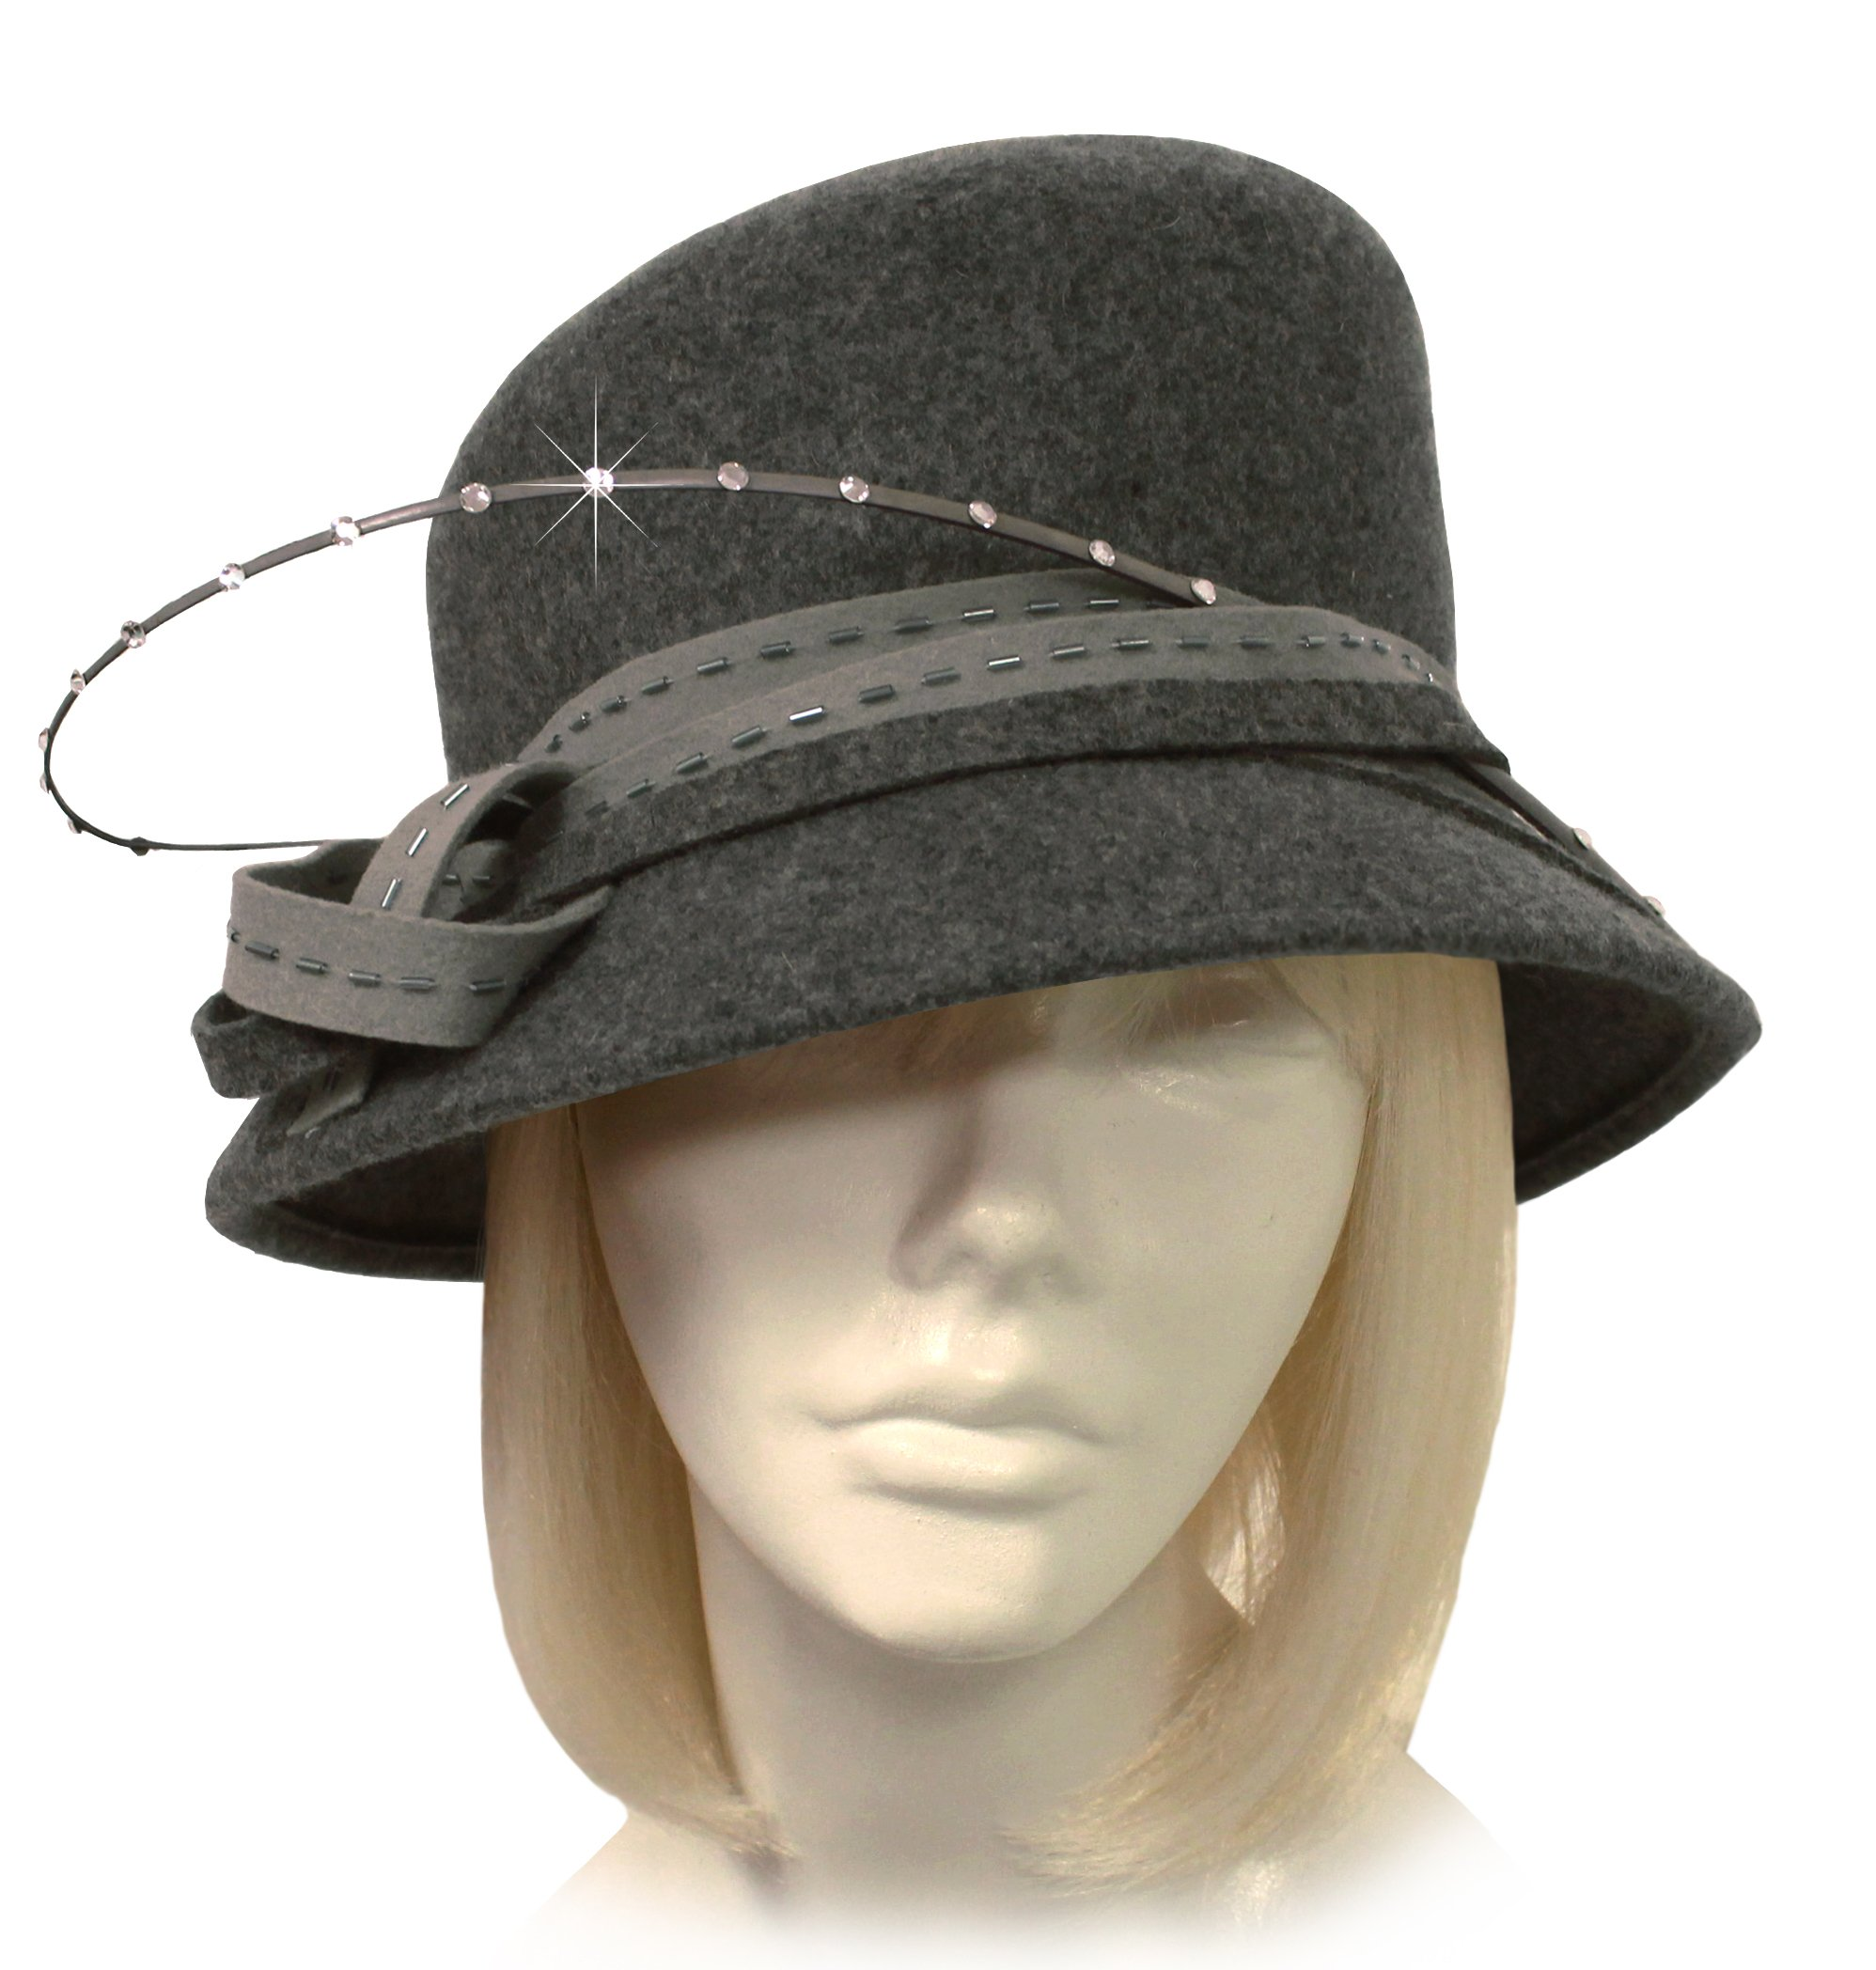 Mr. Song Millinery Cashmere Soft Felt Bucket Style Hat With Rhinestone Accents - 47700RS - CLEARANCE